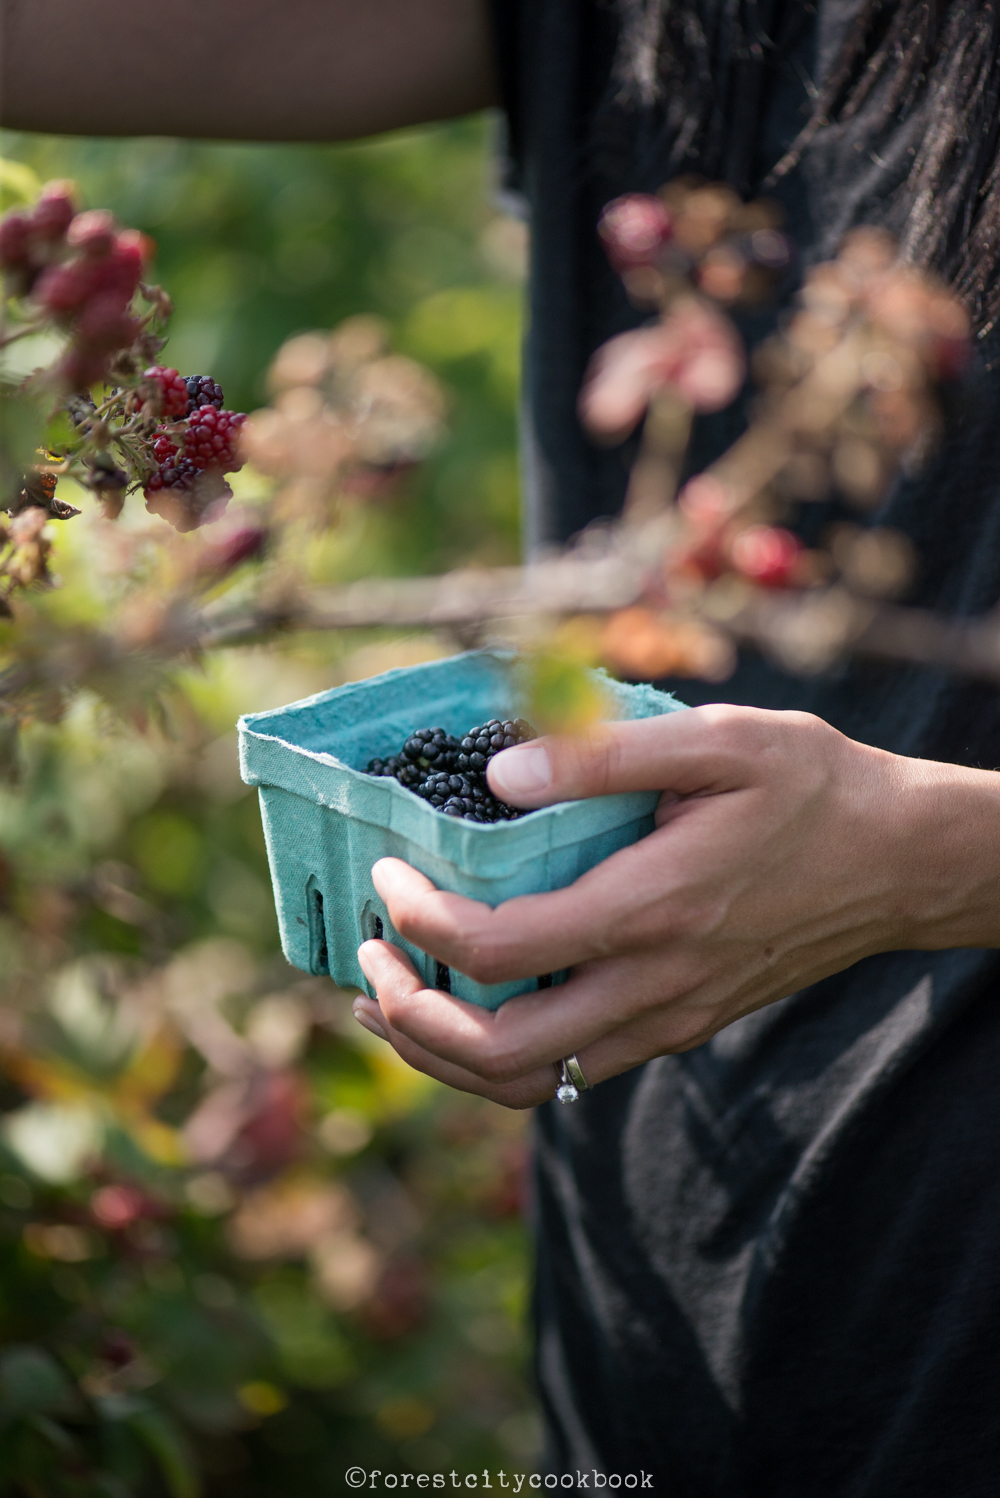 Forest City Cookbook - Blueberries and blackberries - Blueberry Hill - London ontario